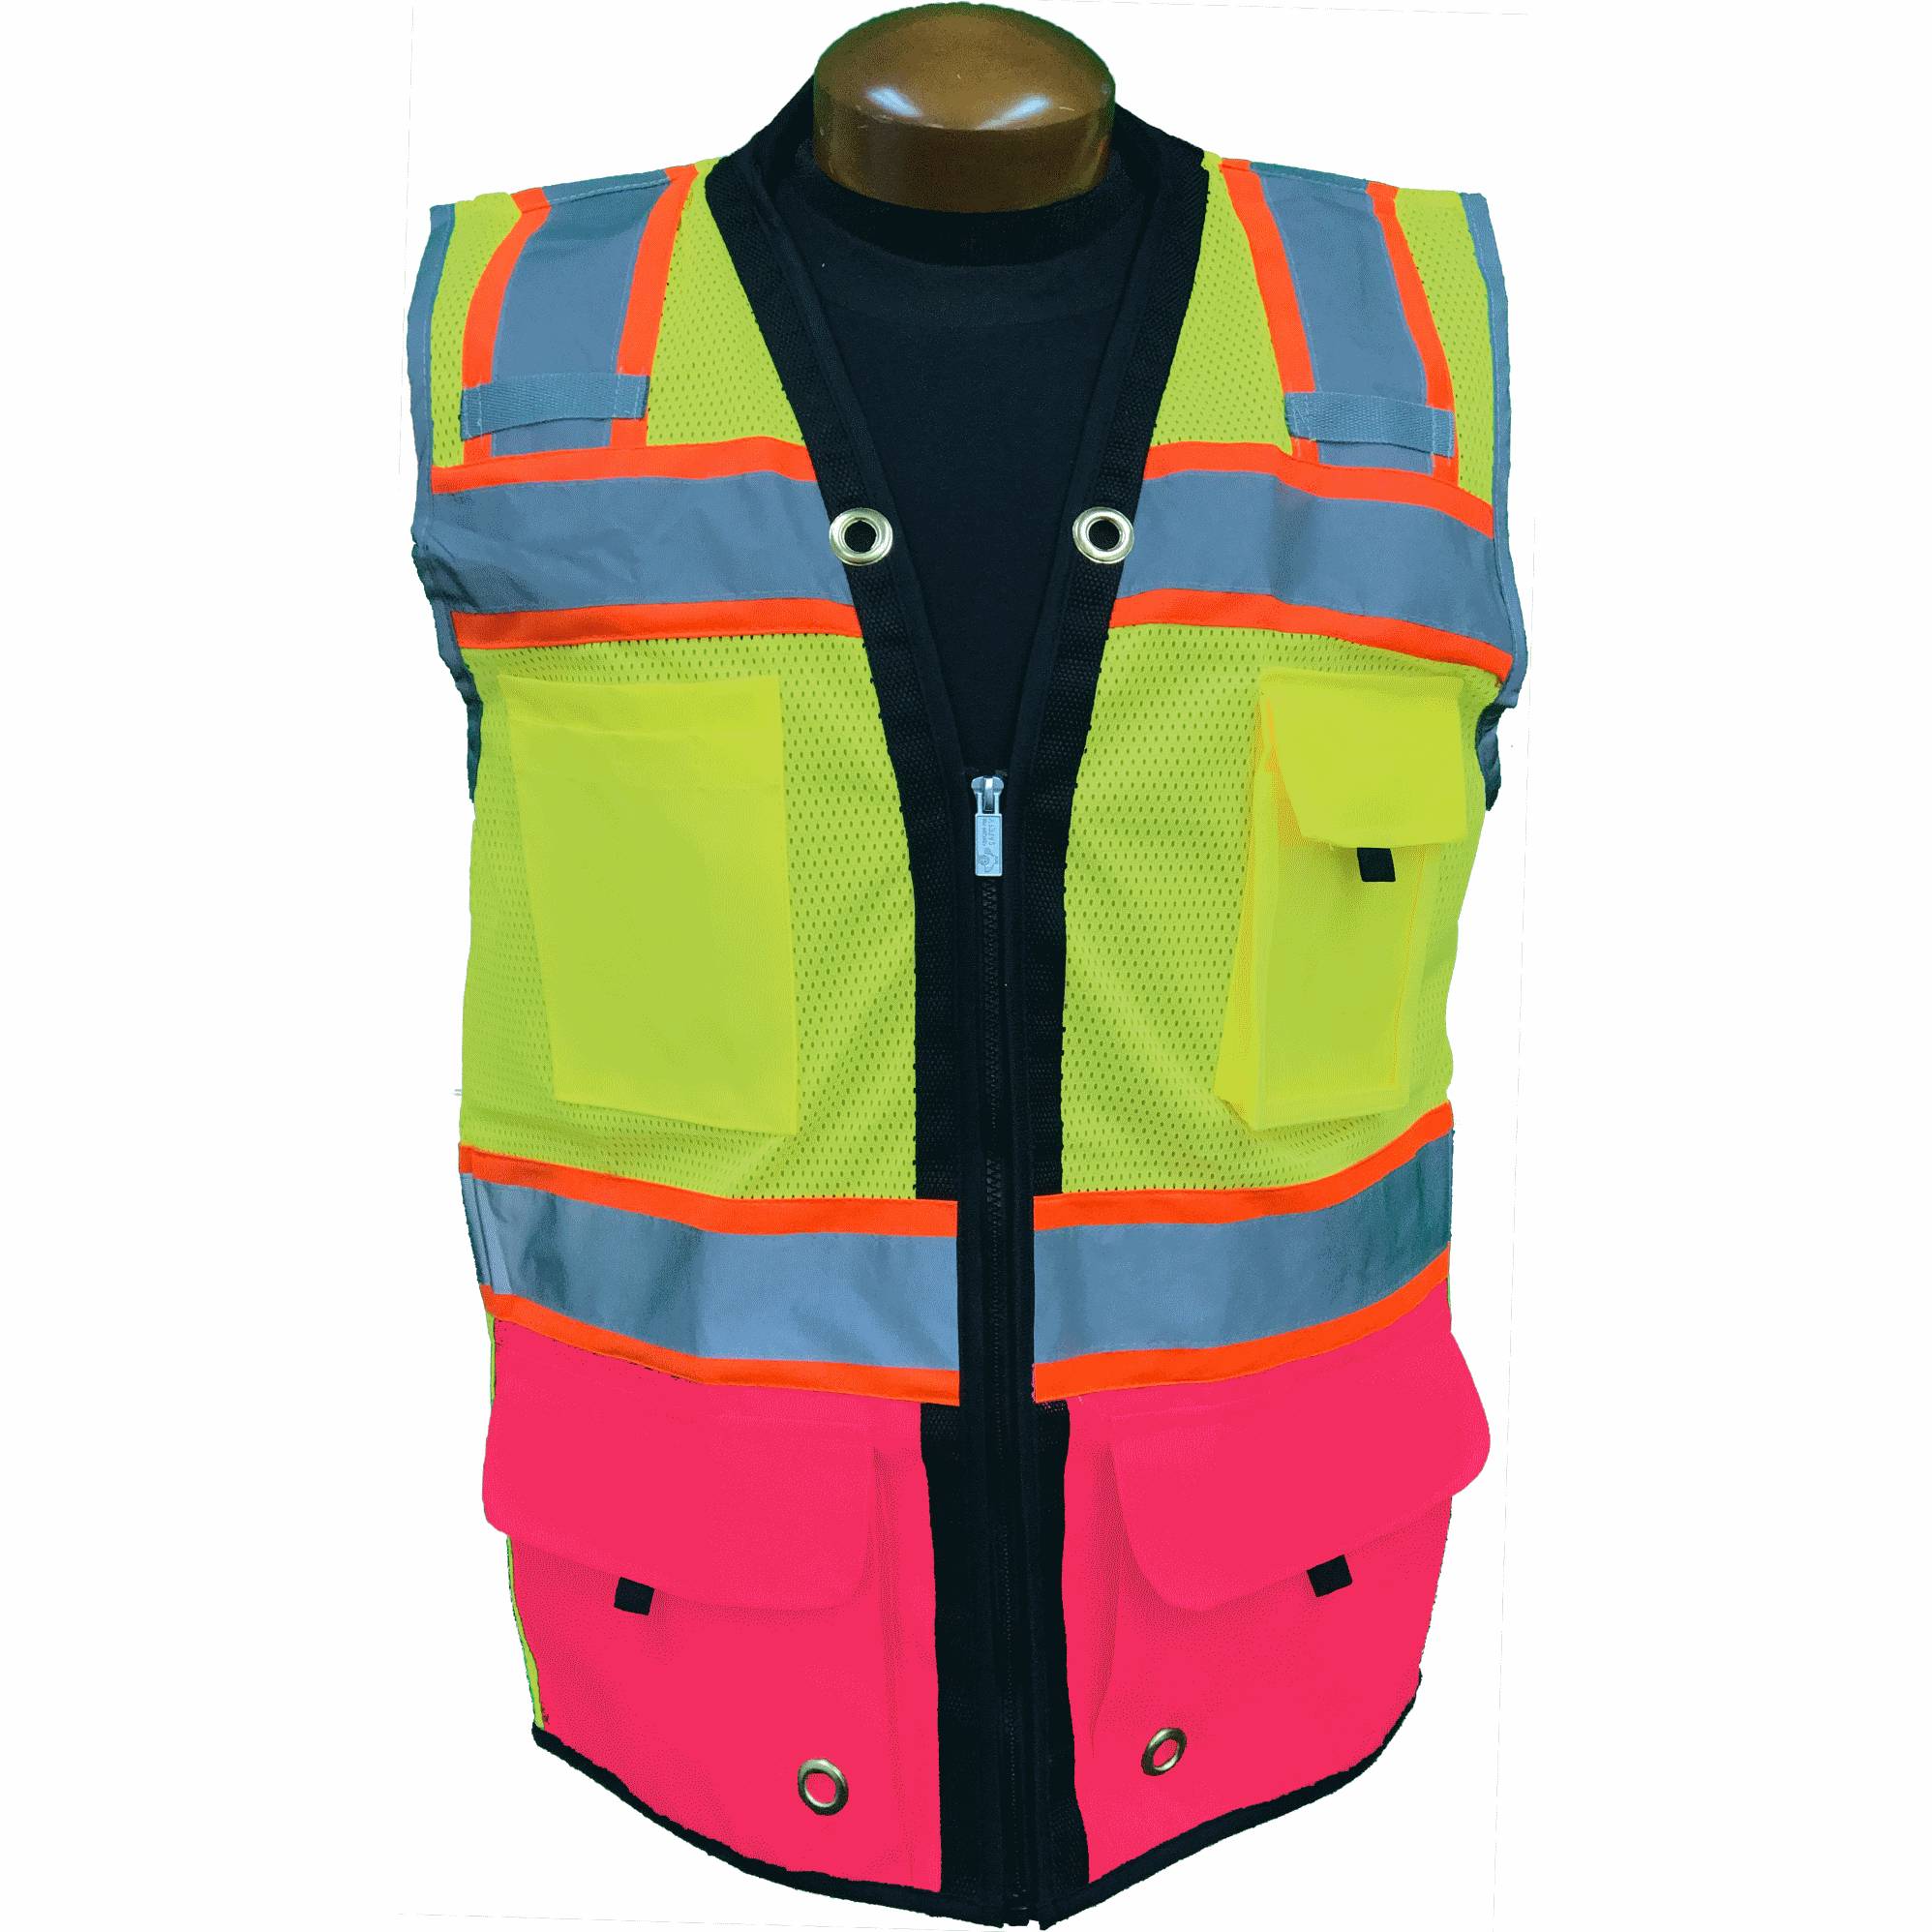 Premium Two Tone Surveyor Vest - Royal Blue - Pink